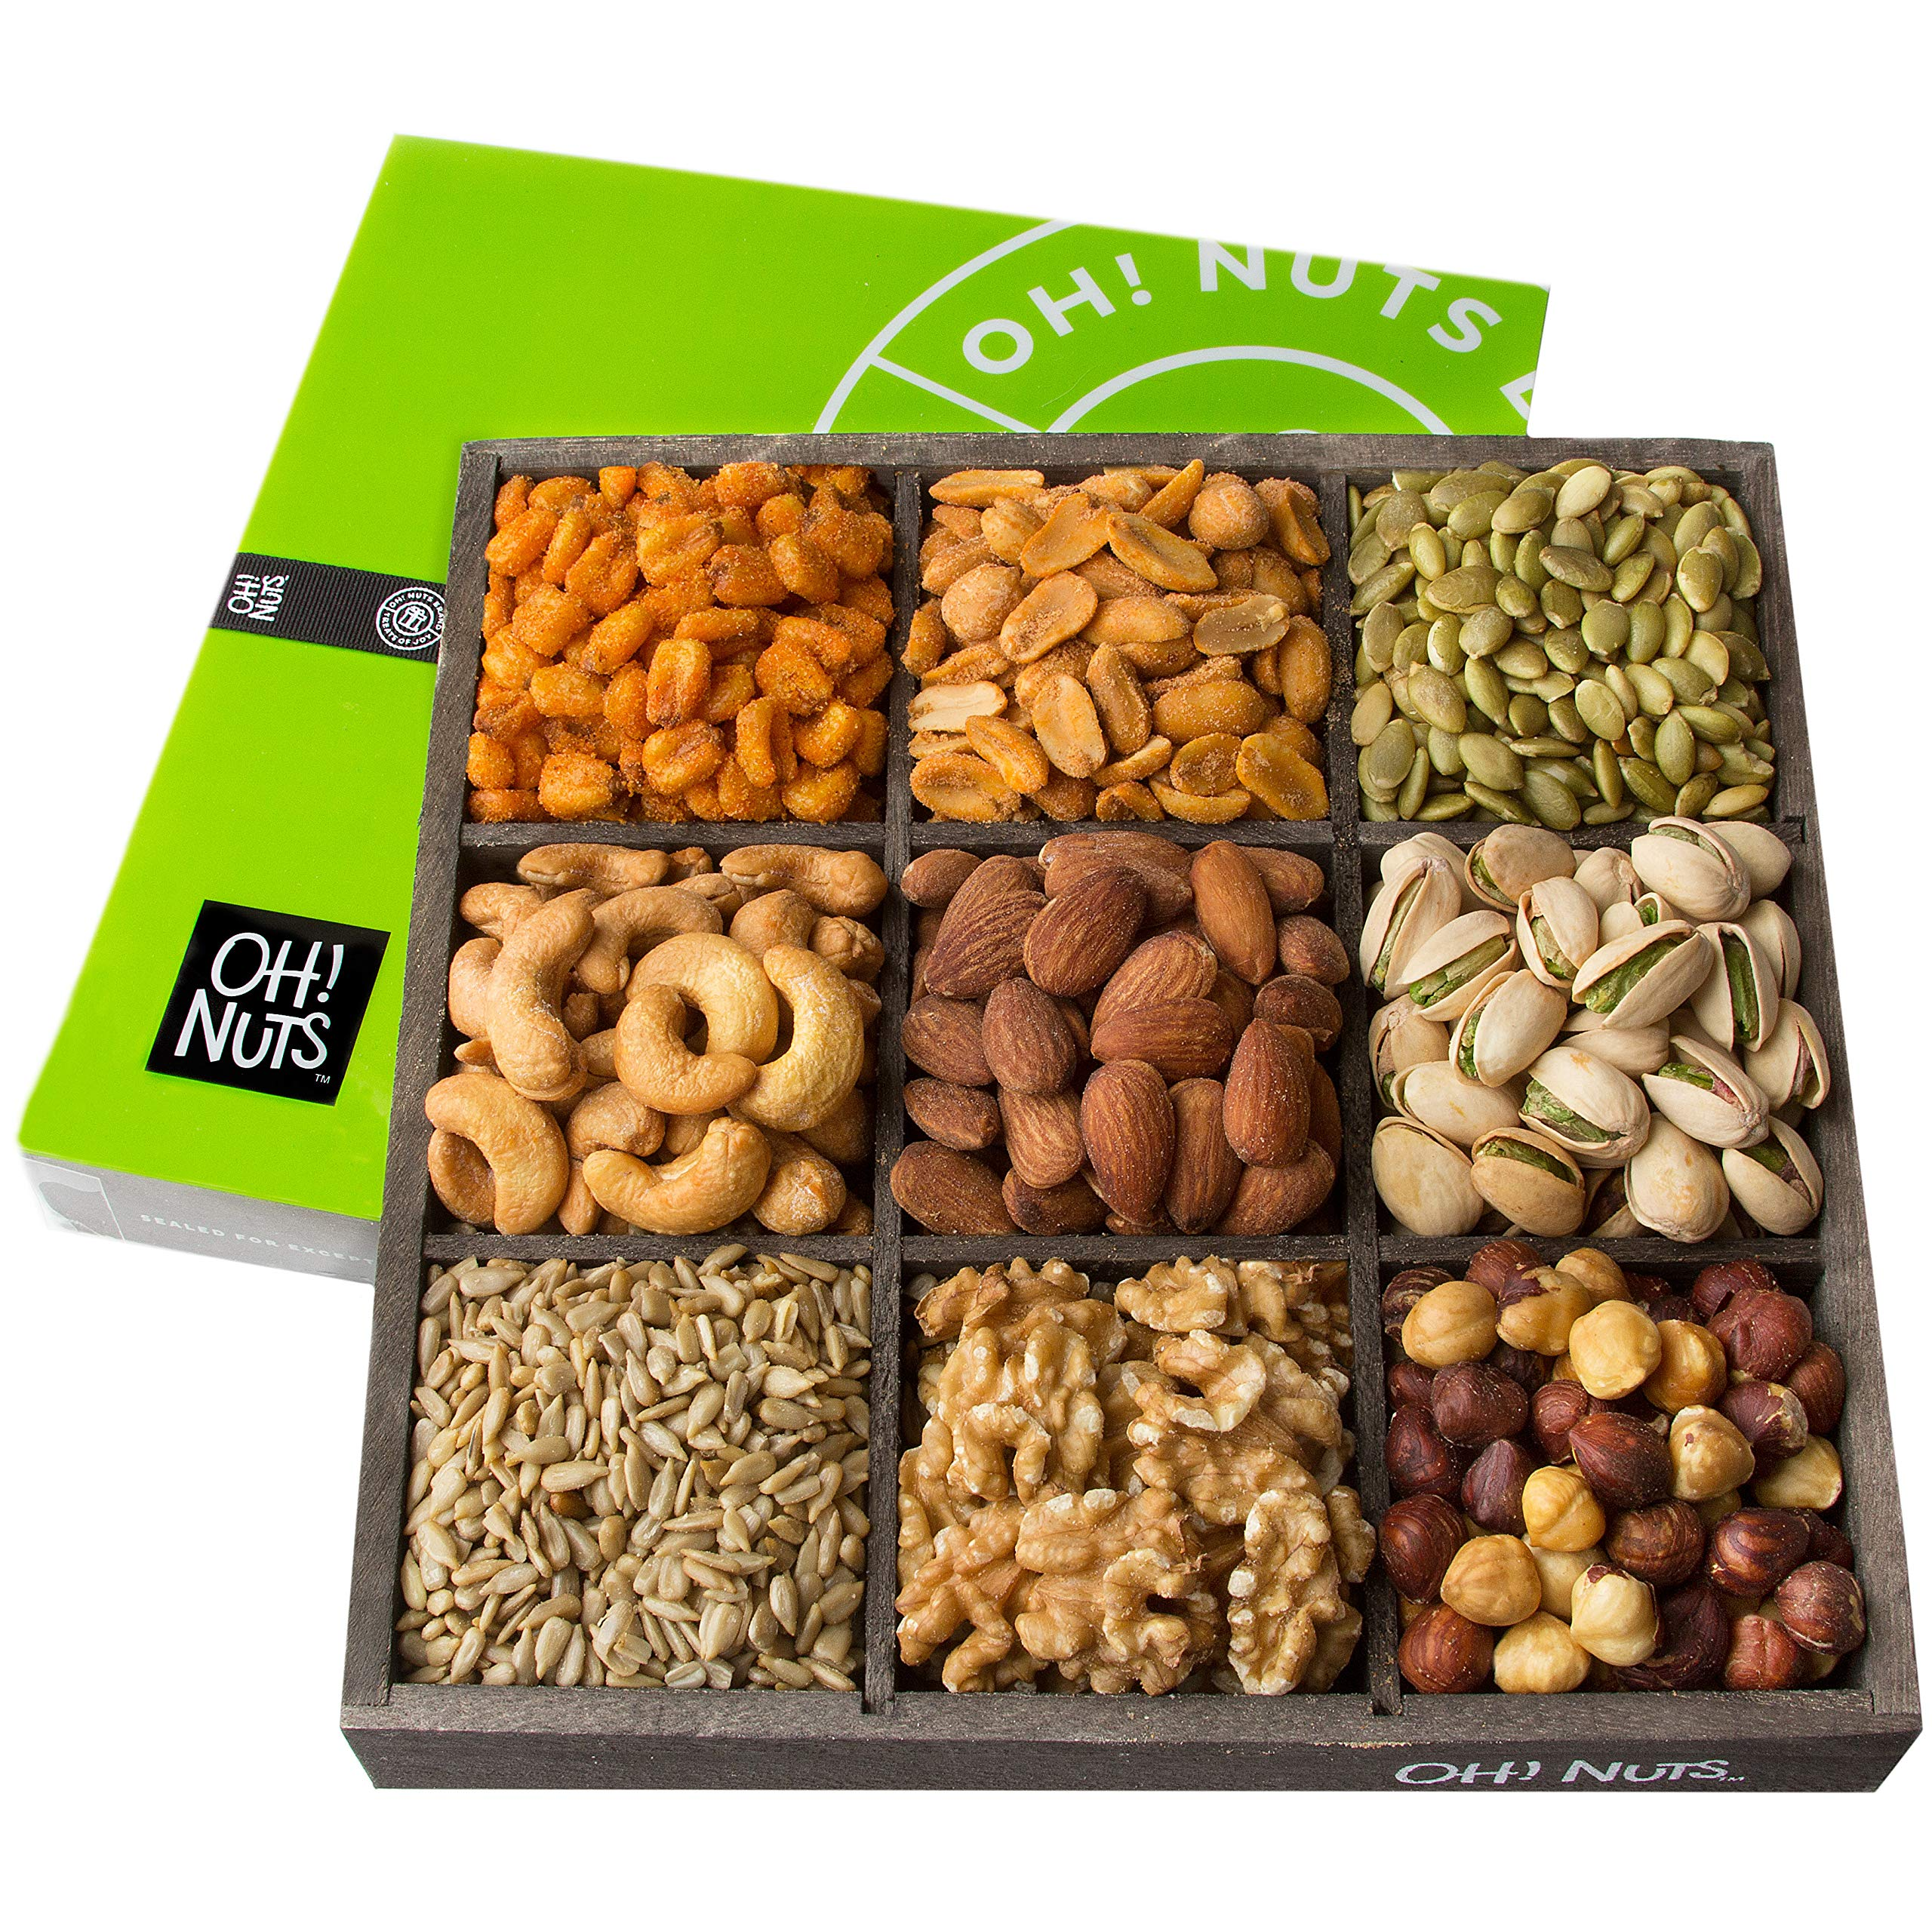 Oh! Nuts Holiday Nuts Gift Basket, 9 Variety Mixed Nut Assortment Wood Tray Baskets, Gourmet Christmas Roasted Healthy Fresh Food Care Package for Corporate, Mothers, Fathers Day or Thanksgiving